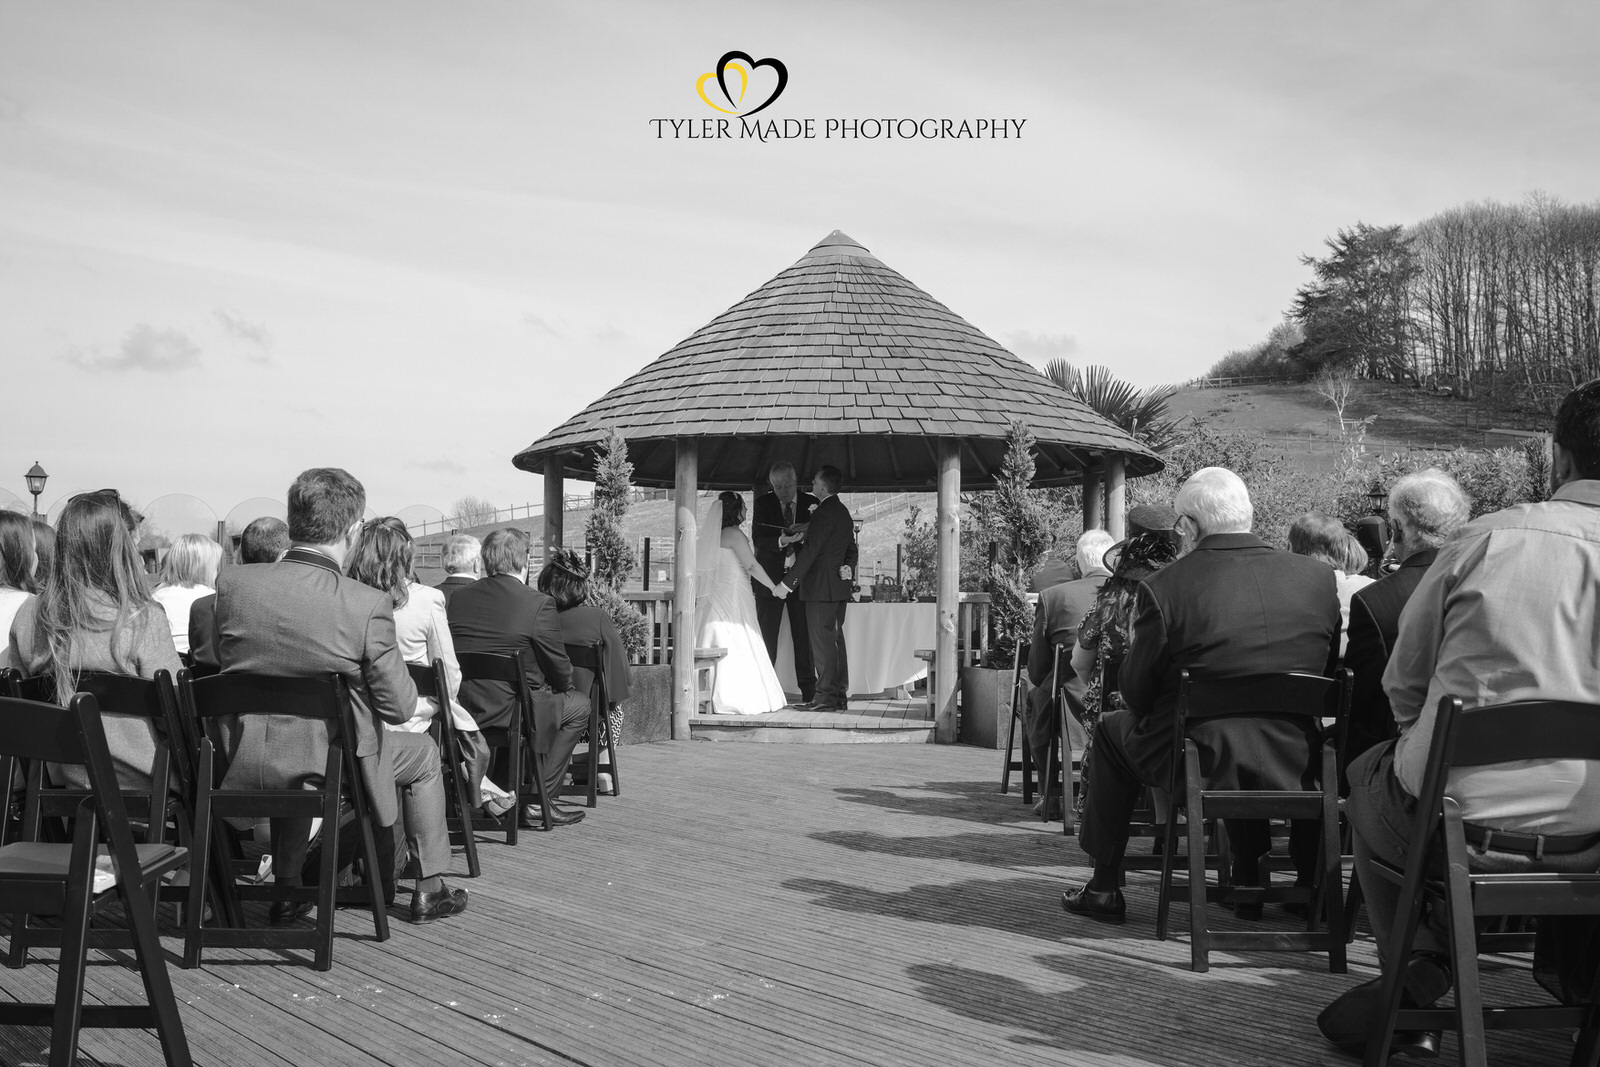 Wedding Vows at The Barn, Upchurch Wedding Venue by Kent Wedding Photographer Tyler Made Photography